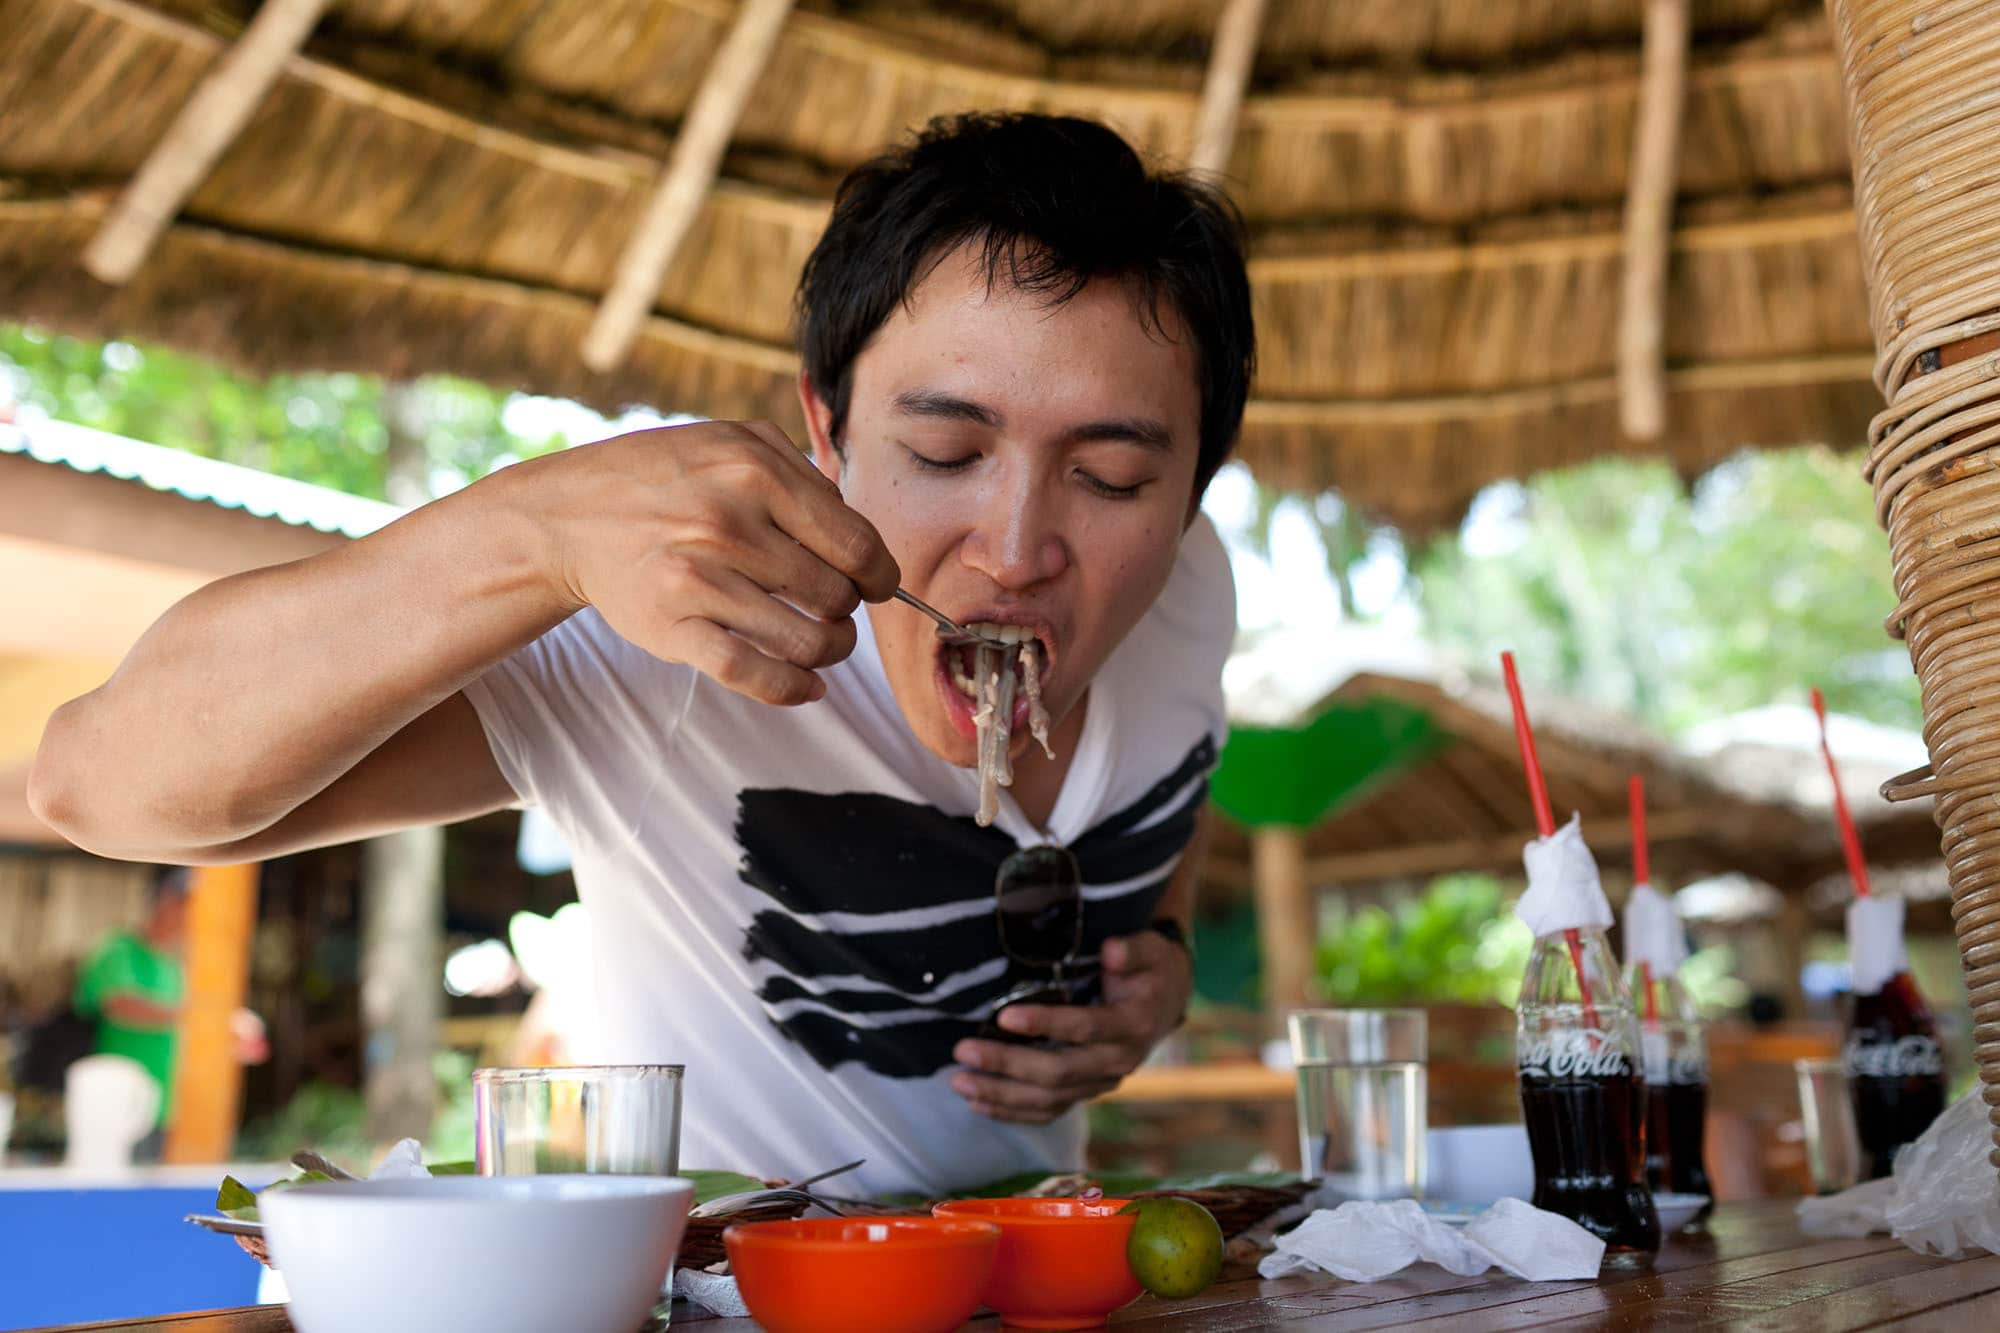 I ate a worm. Eating tamilok worm in Puerto Princesa, Philippines - woodworm, shipworm.